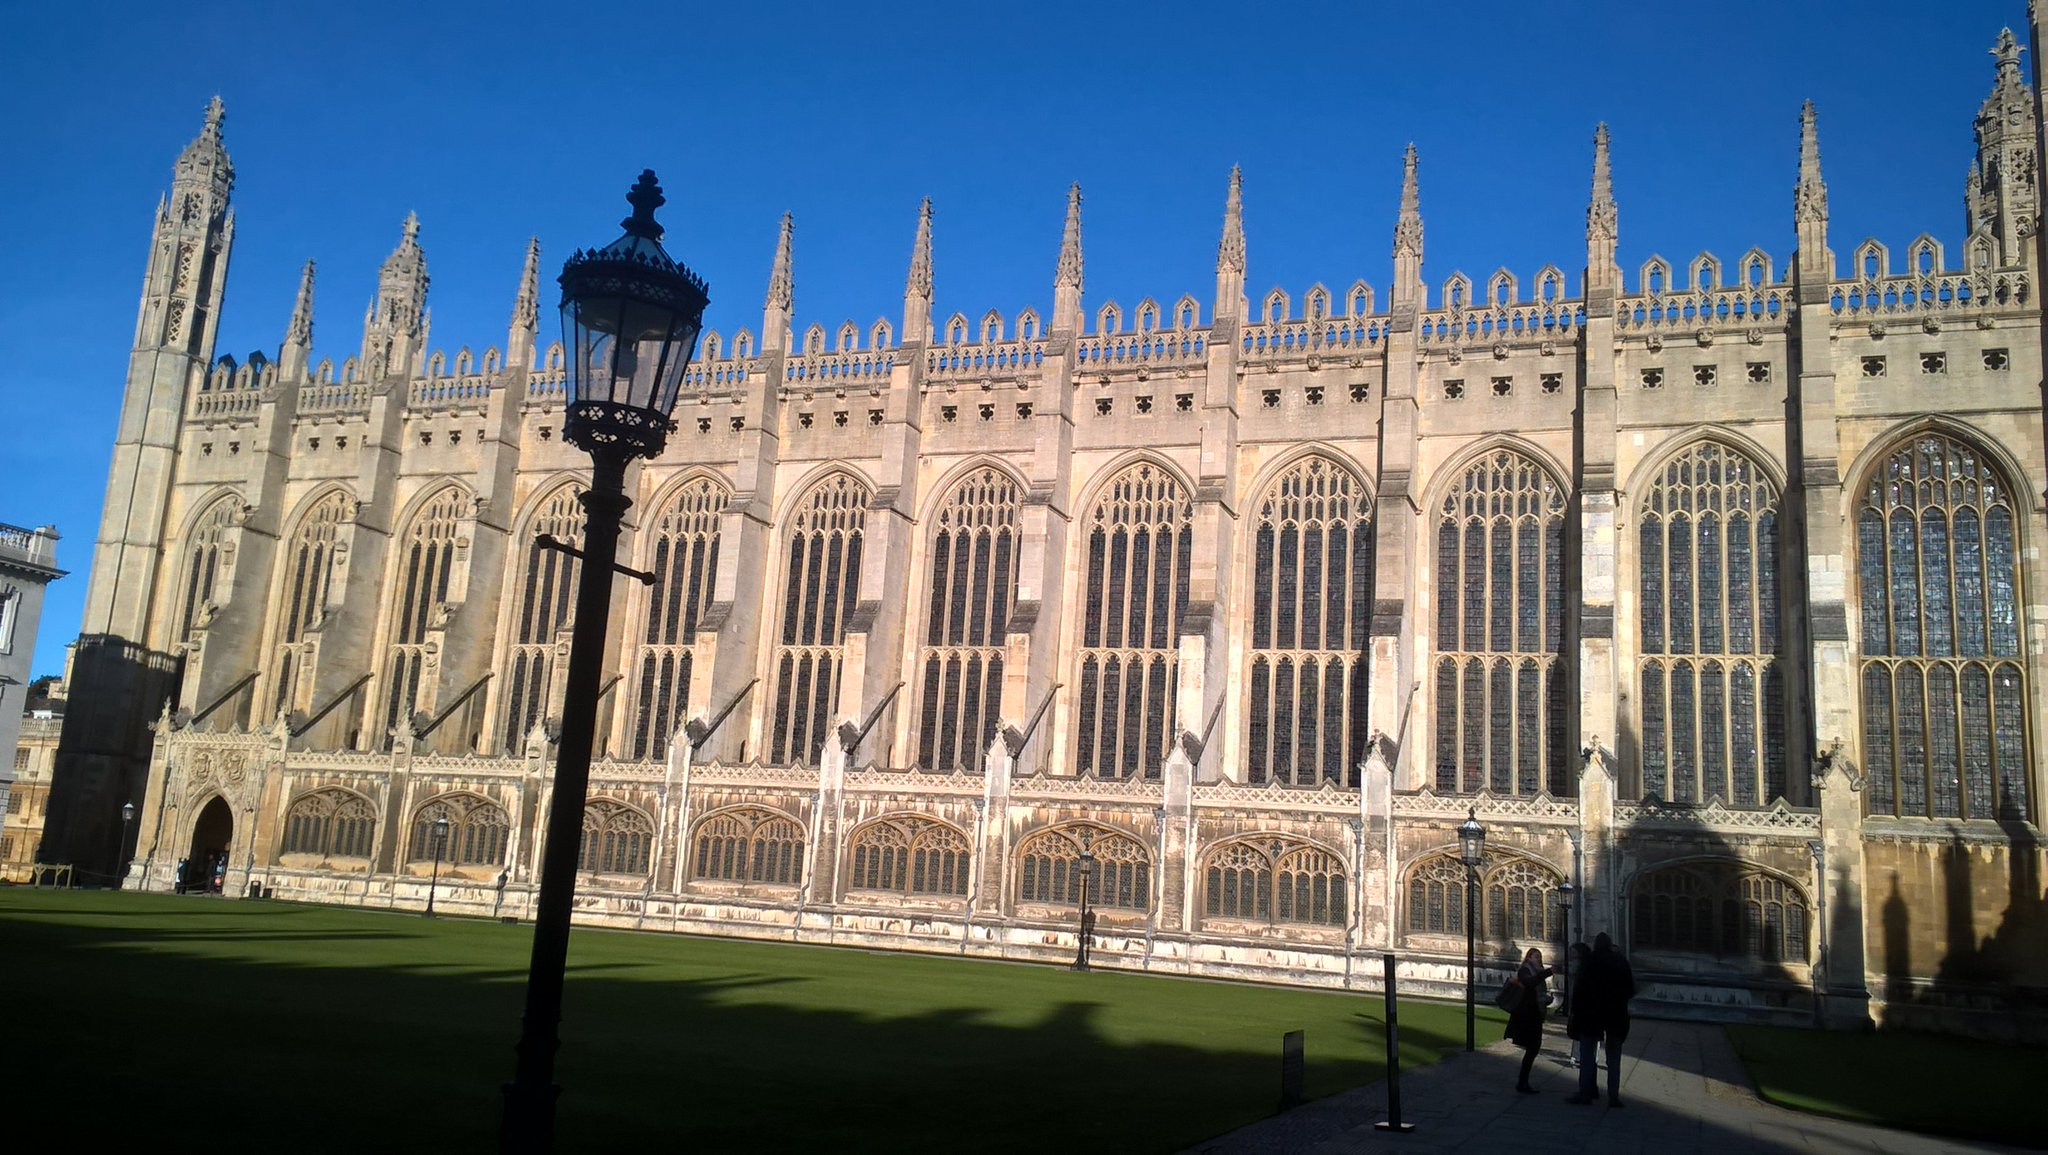 Glorious morning in Cambridge for #HLFImpact16. Looking forward to talks. https://t.co/dbq7Mk3SDS